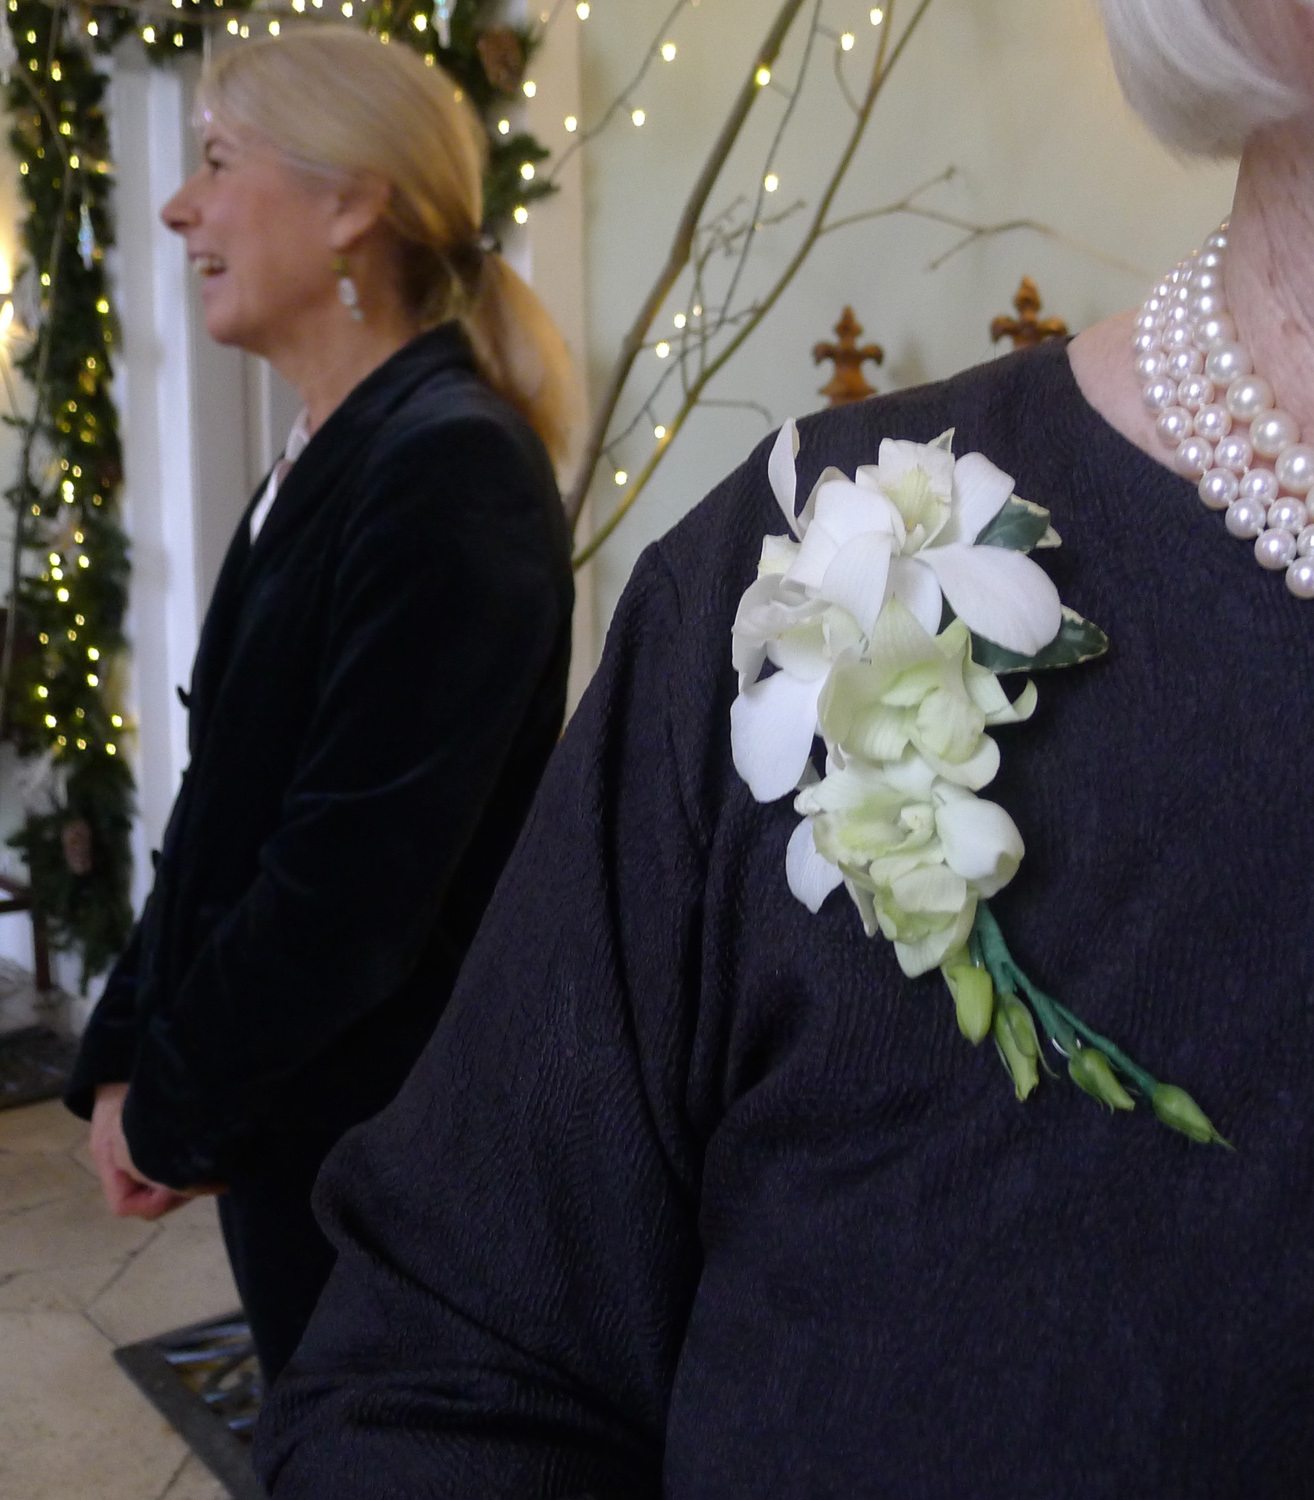 corsage of dendrobium orchids and ivy leaves